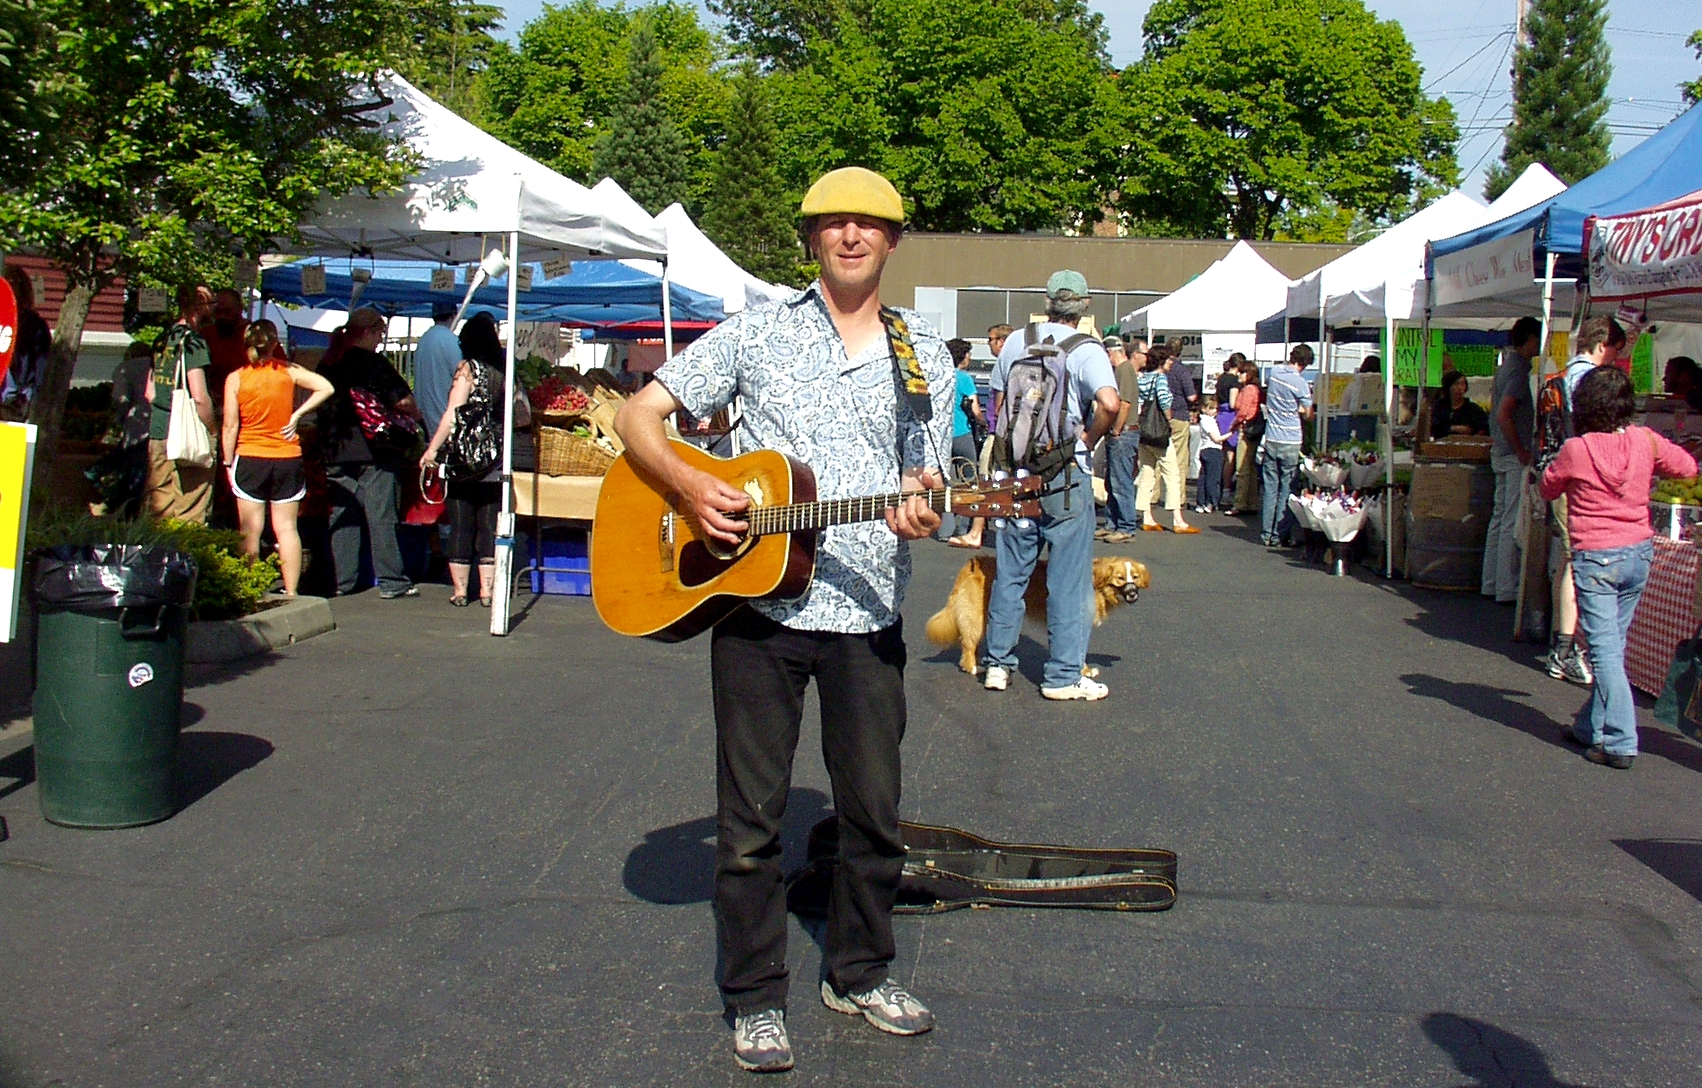 Andrew MacKintosh performing at the Wallingford Farmers Market in May. Photo copyright 2009 by Zachary D. Lyons.